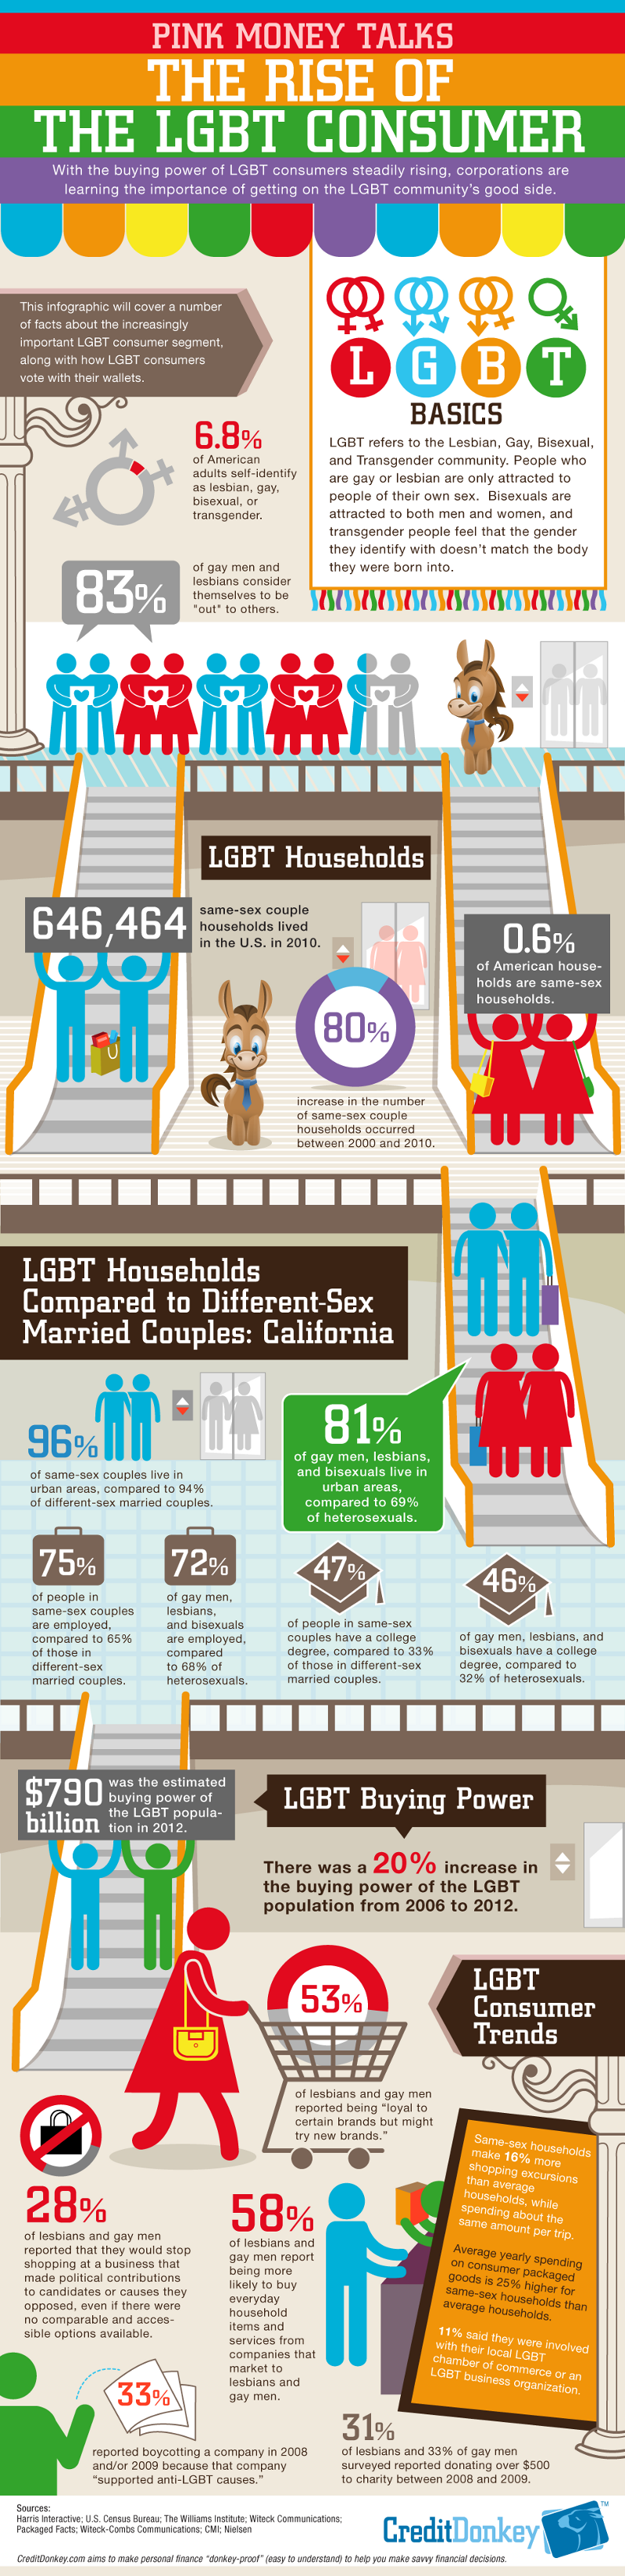 LGBT Consumer Facts